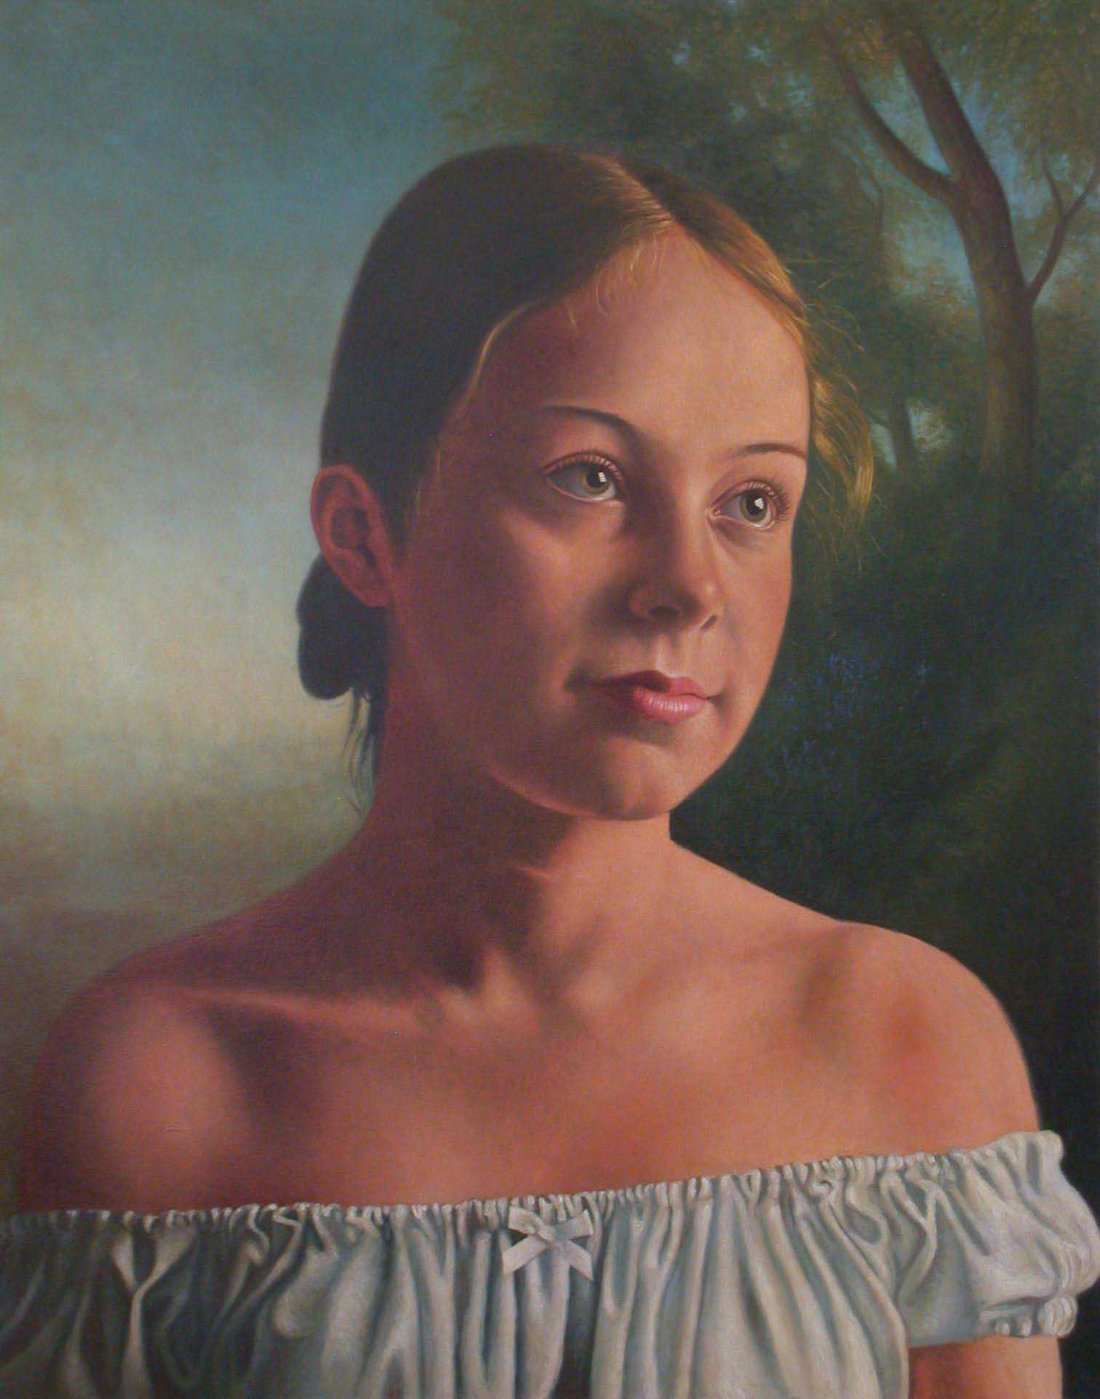 P BONNYBRIDGE GIRL oil 5x4.private collection,Salt Lake City